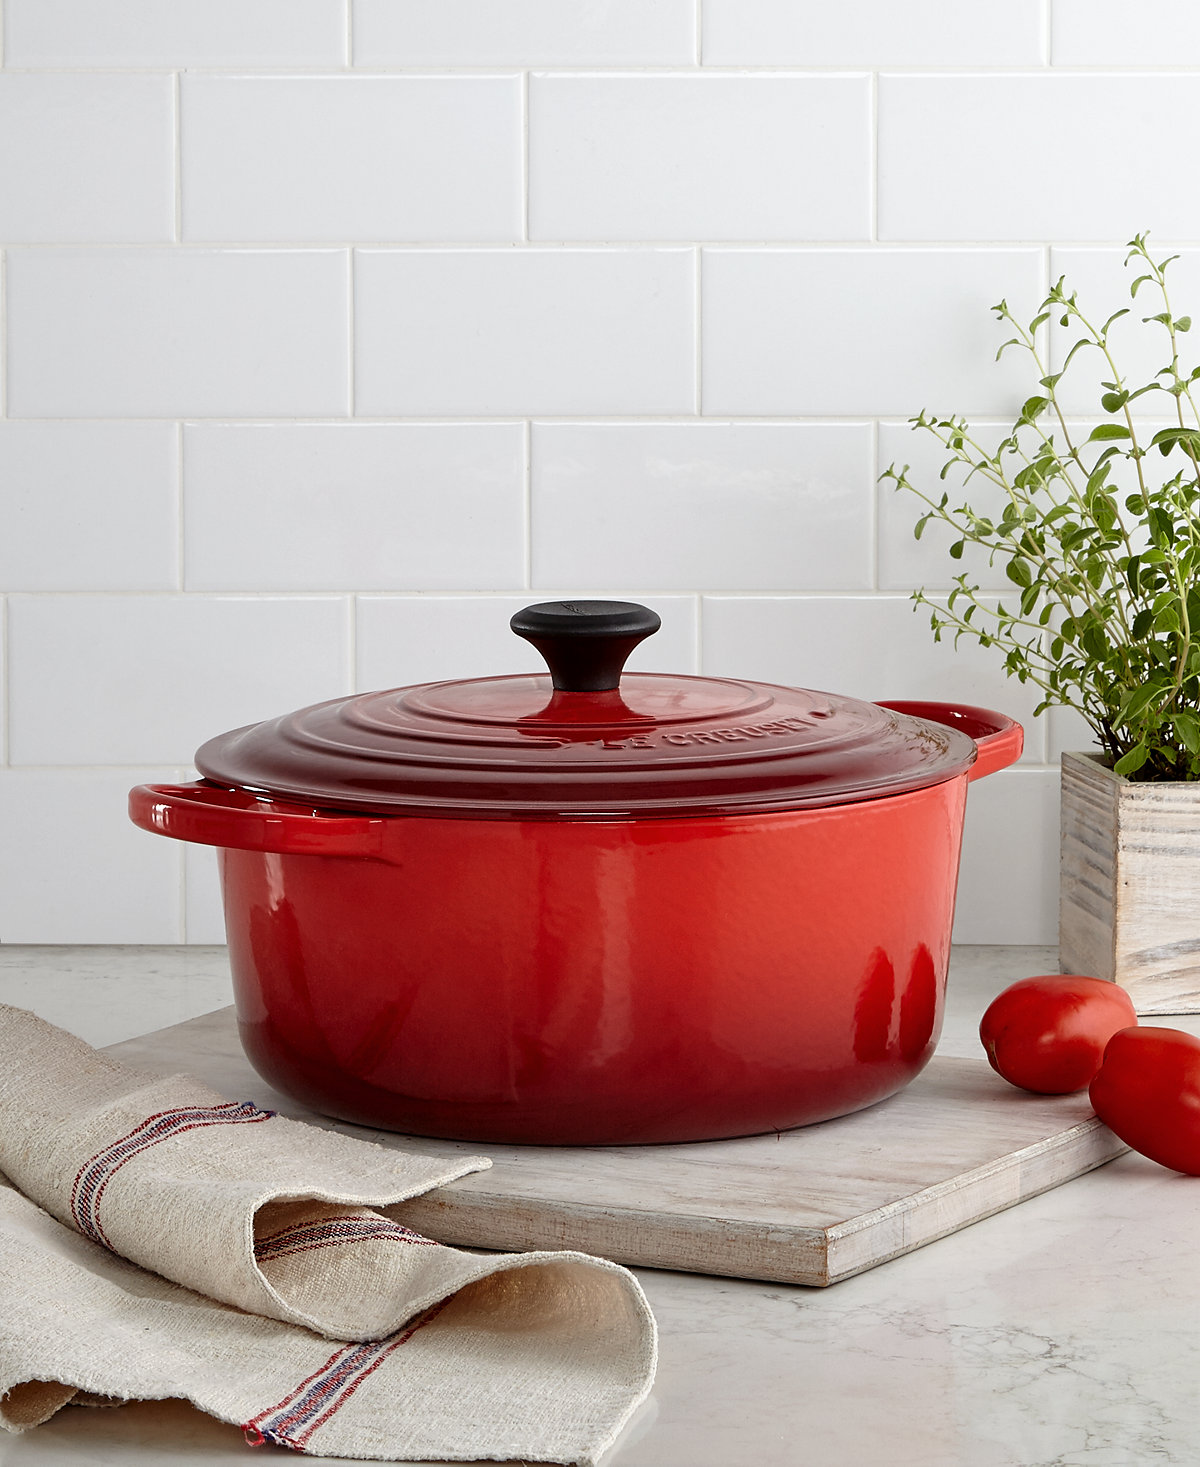 MACYS BLACK FRIDAY SPECIAL! DUTCH OVENS UP TO 75% OFF!